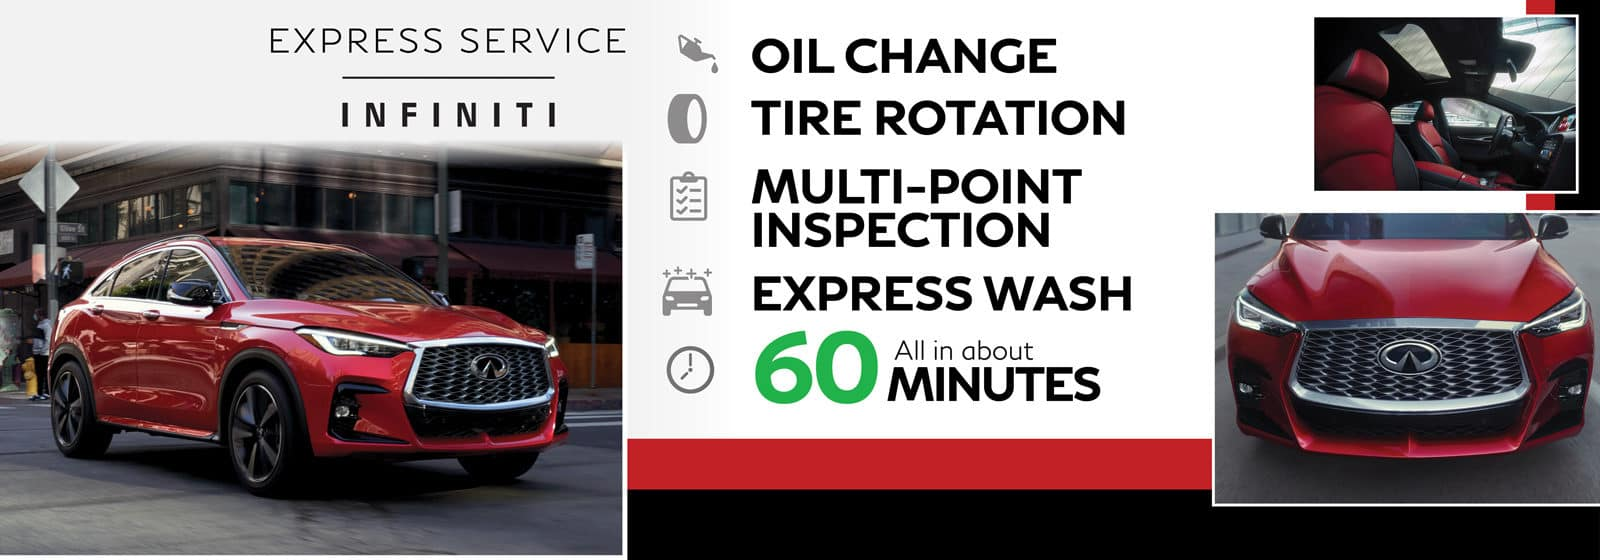 Express Service Offer | INFINITI of Naperville